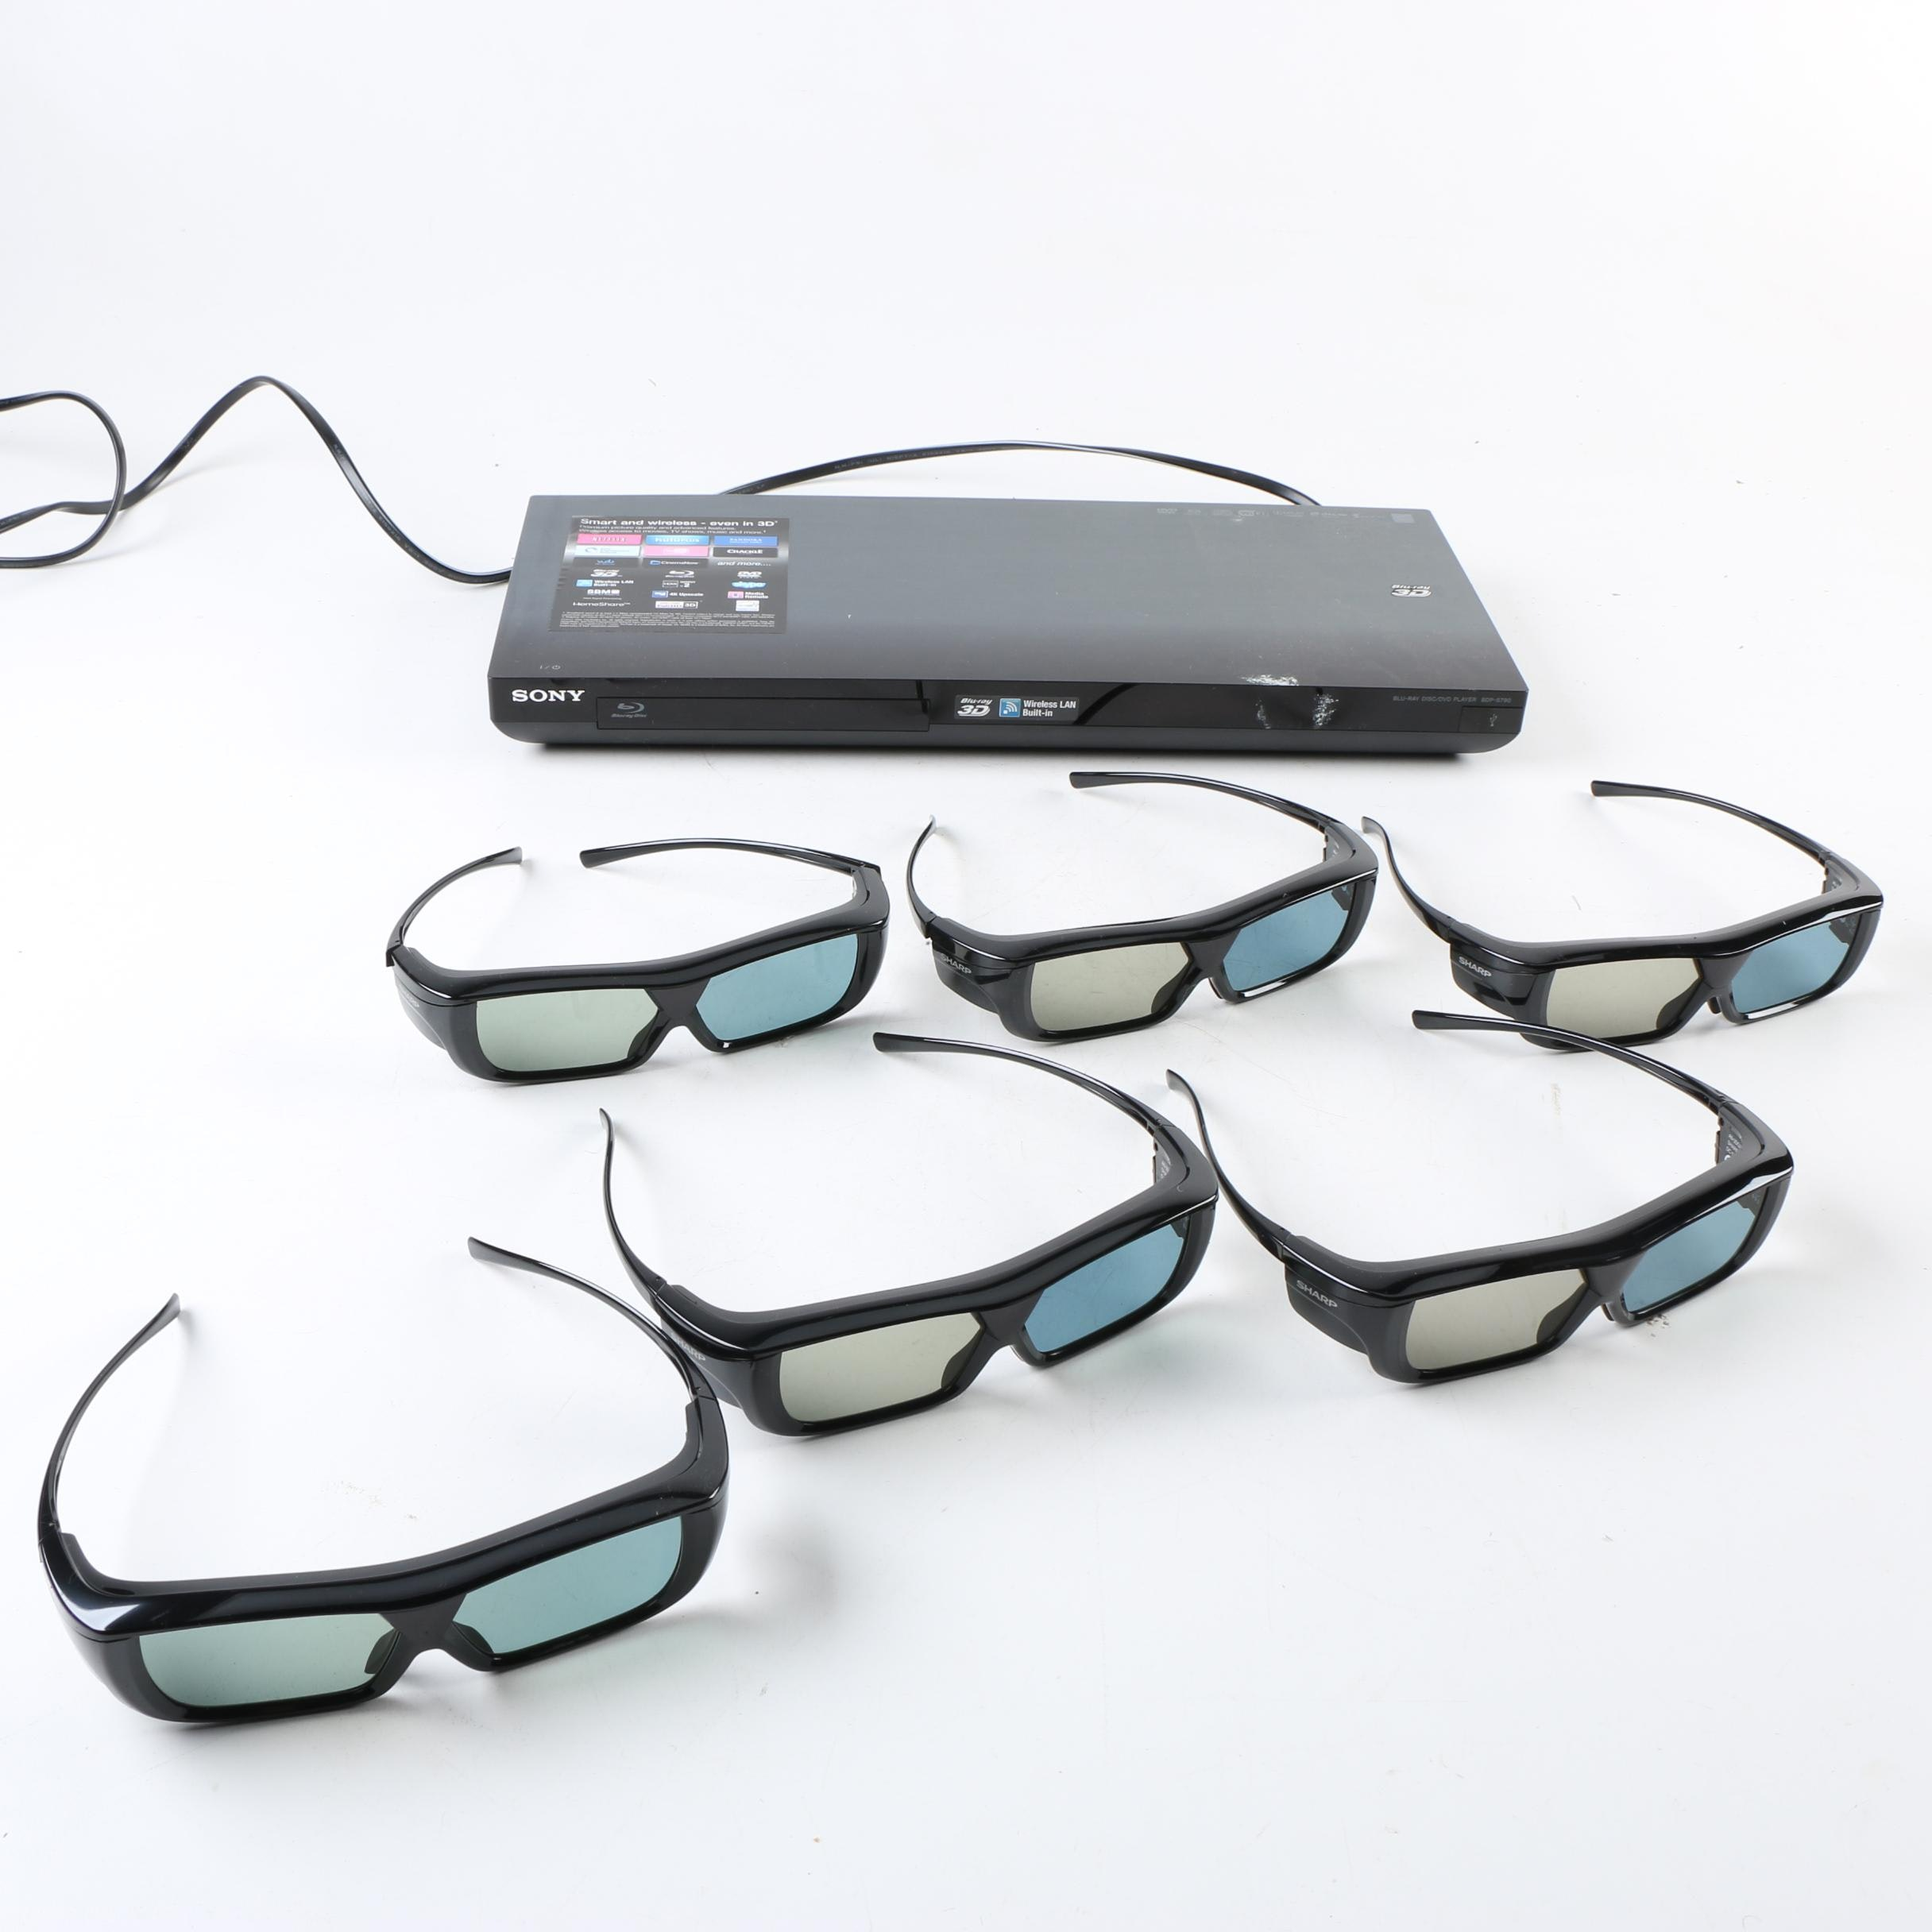 Sony Blu-Ray 3-D System with 3-D Glasses